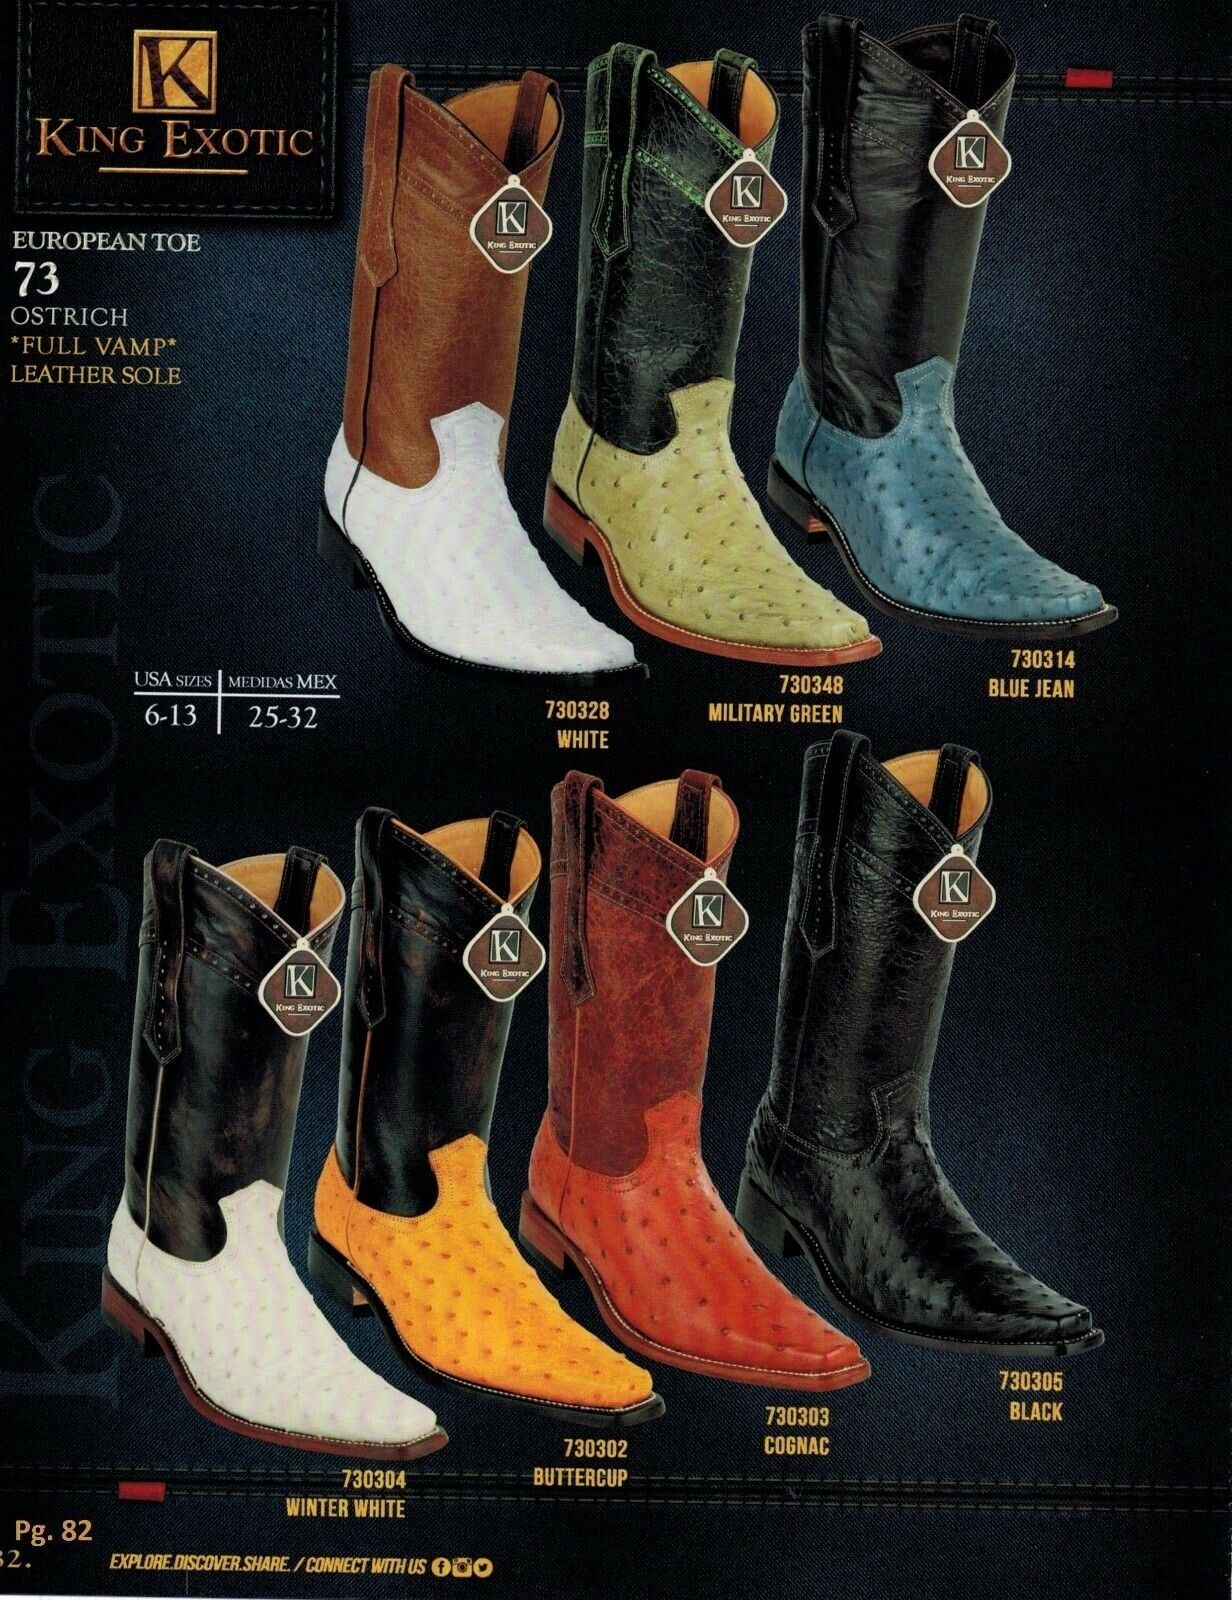 sports shoes f38d7 b5f65 King Exotic Men s European Toe Genuine Full Quill Ostrich Cowboy Western  Boots